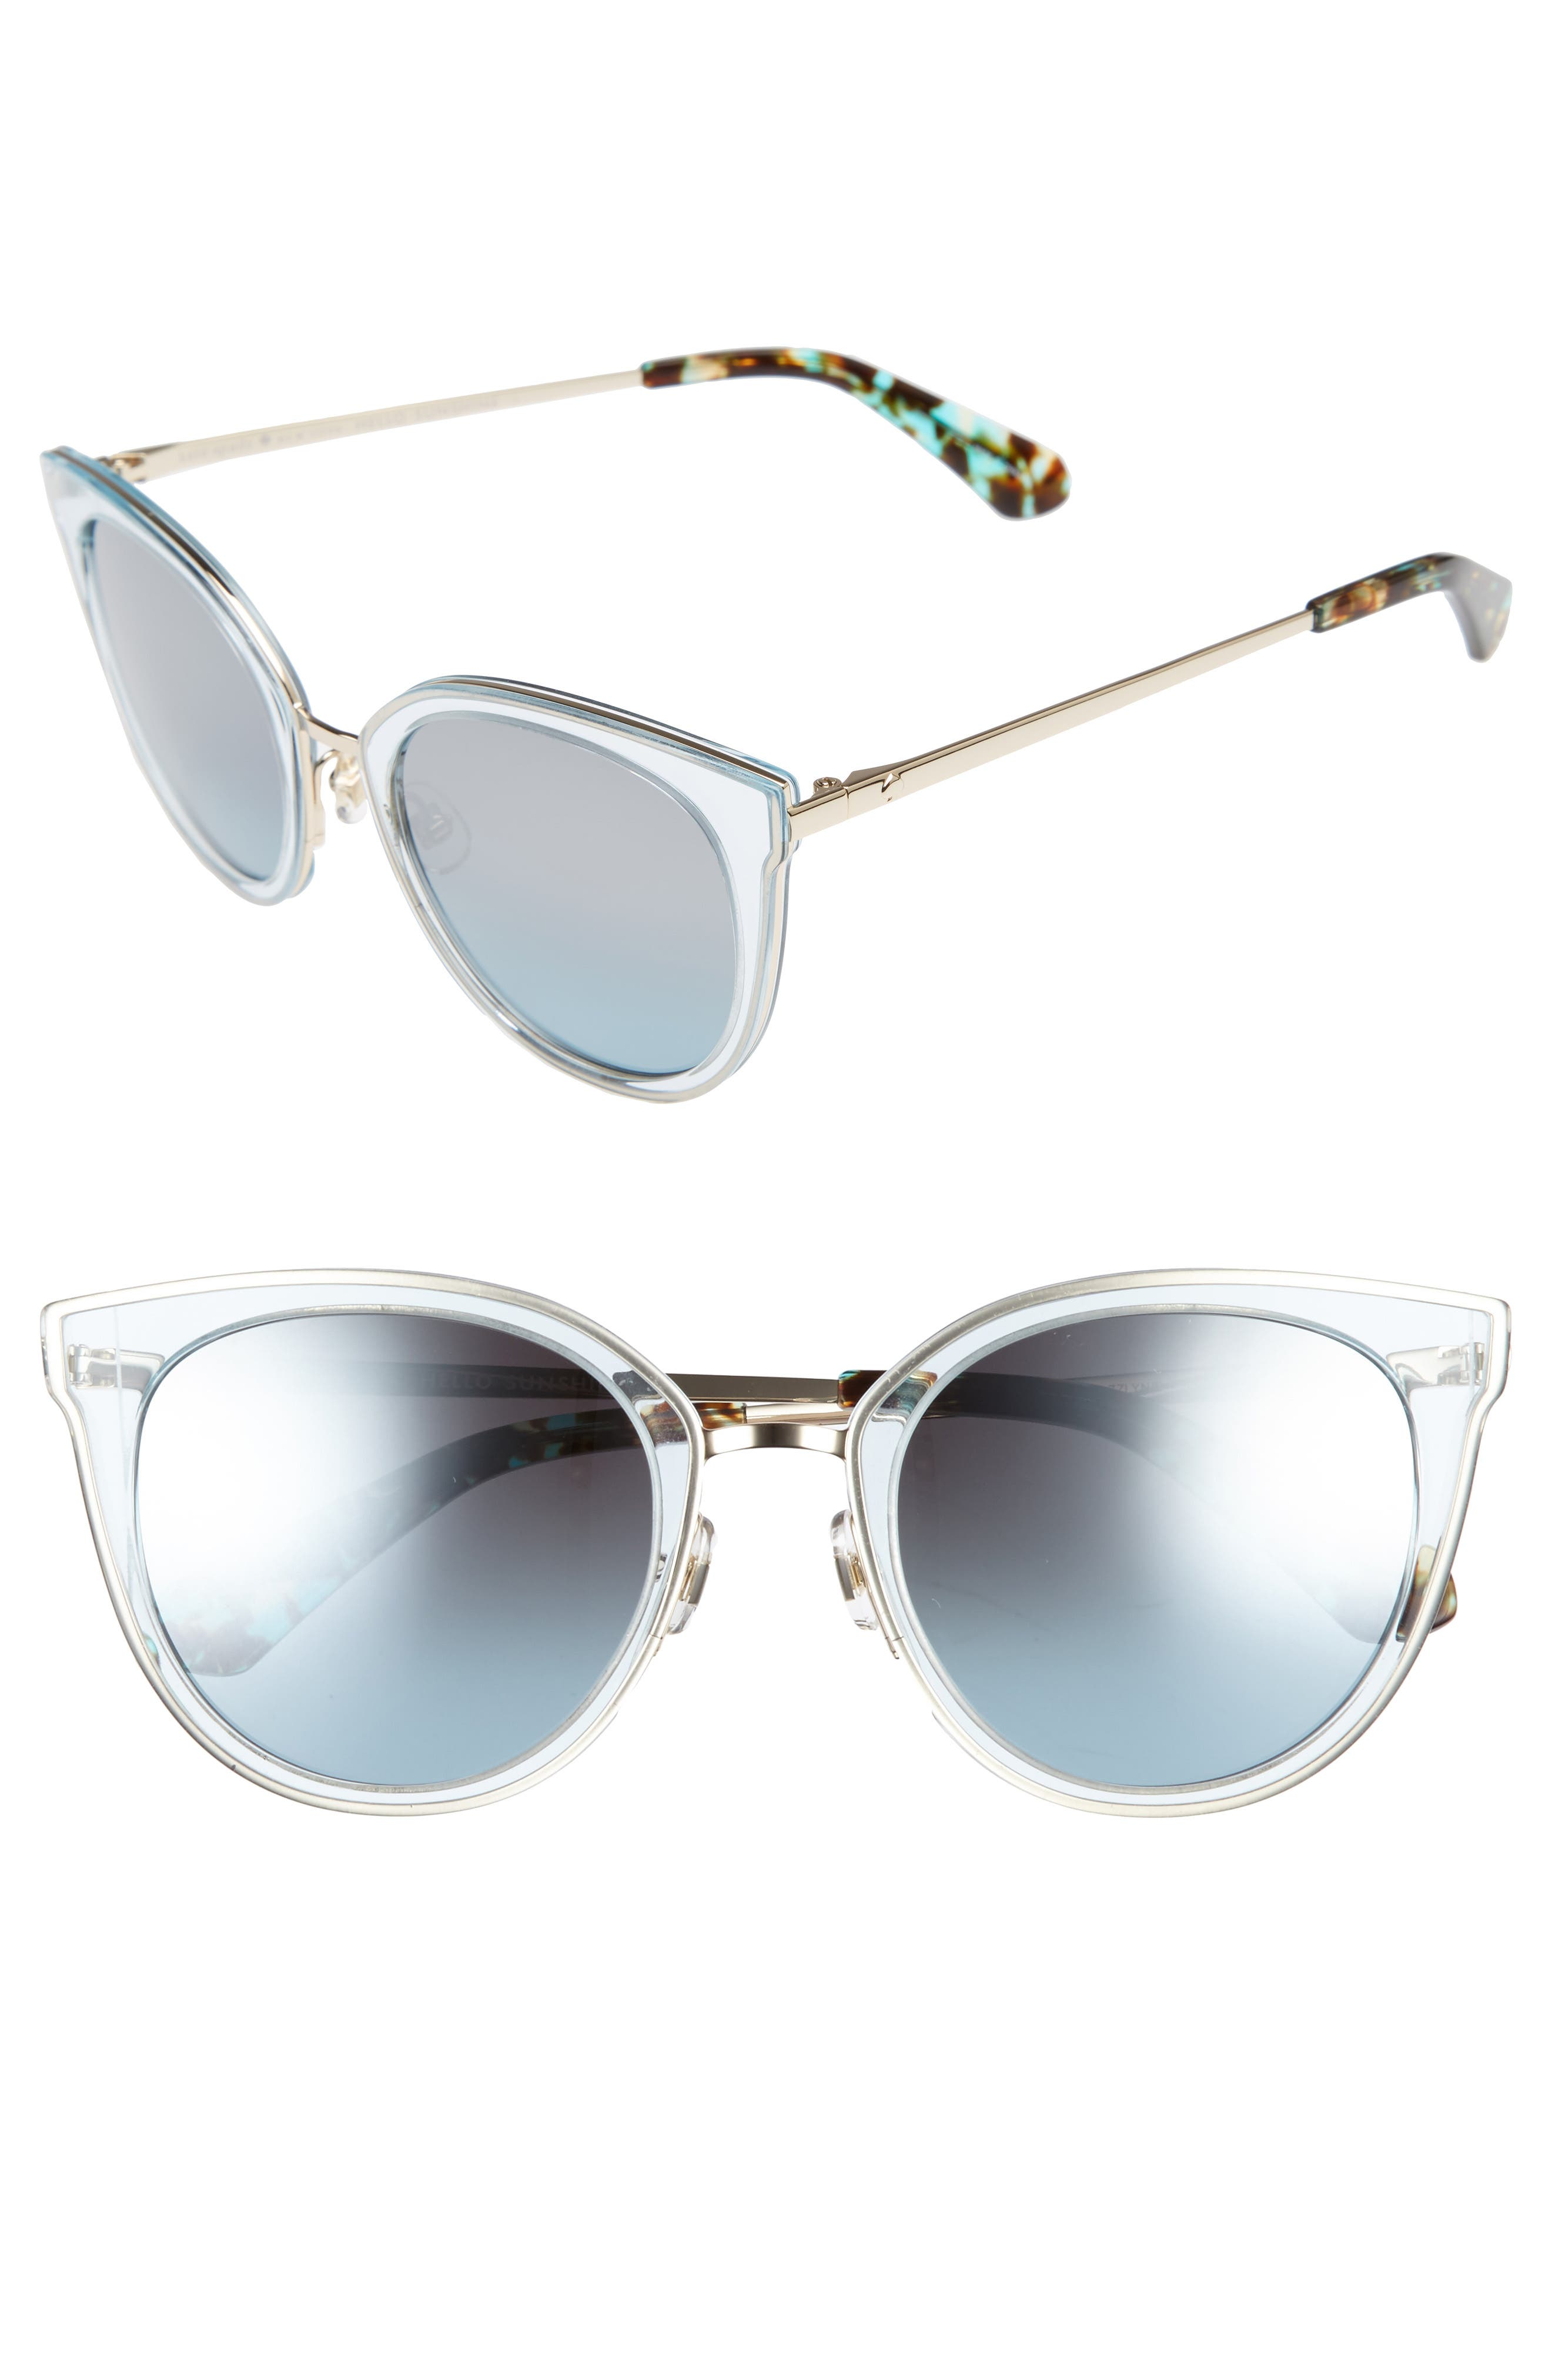 jazzlyn 51mm cat eye sunglasses,                             Main thumbnail 1, color,                             BLUE/ GOLD